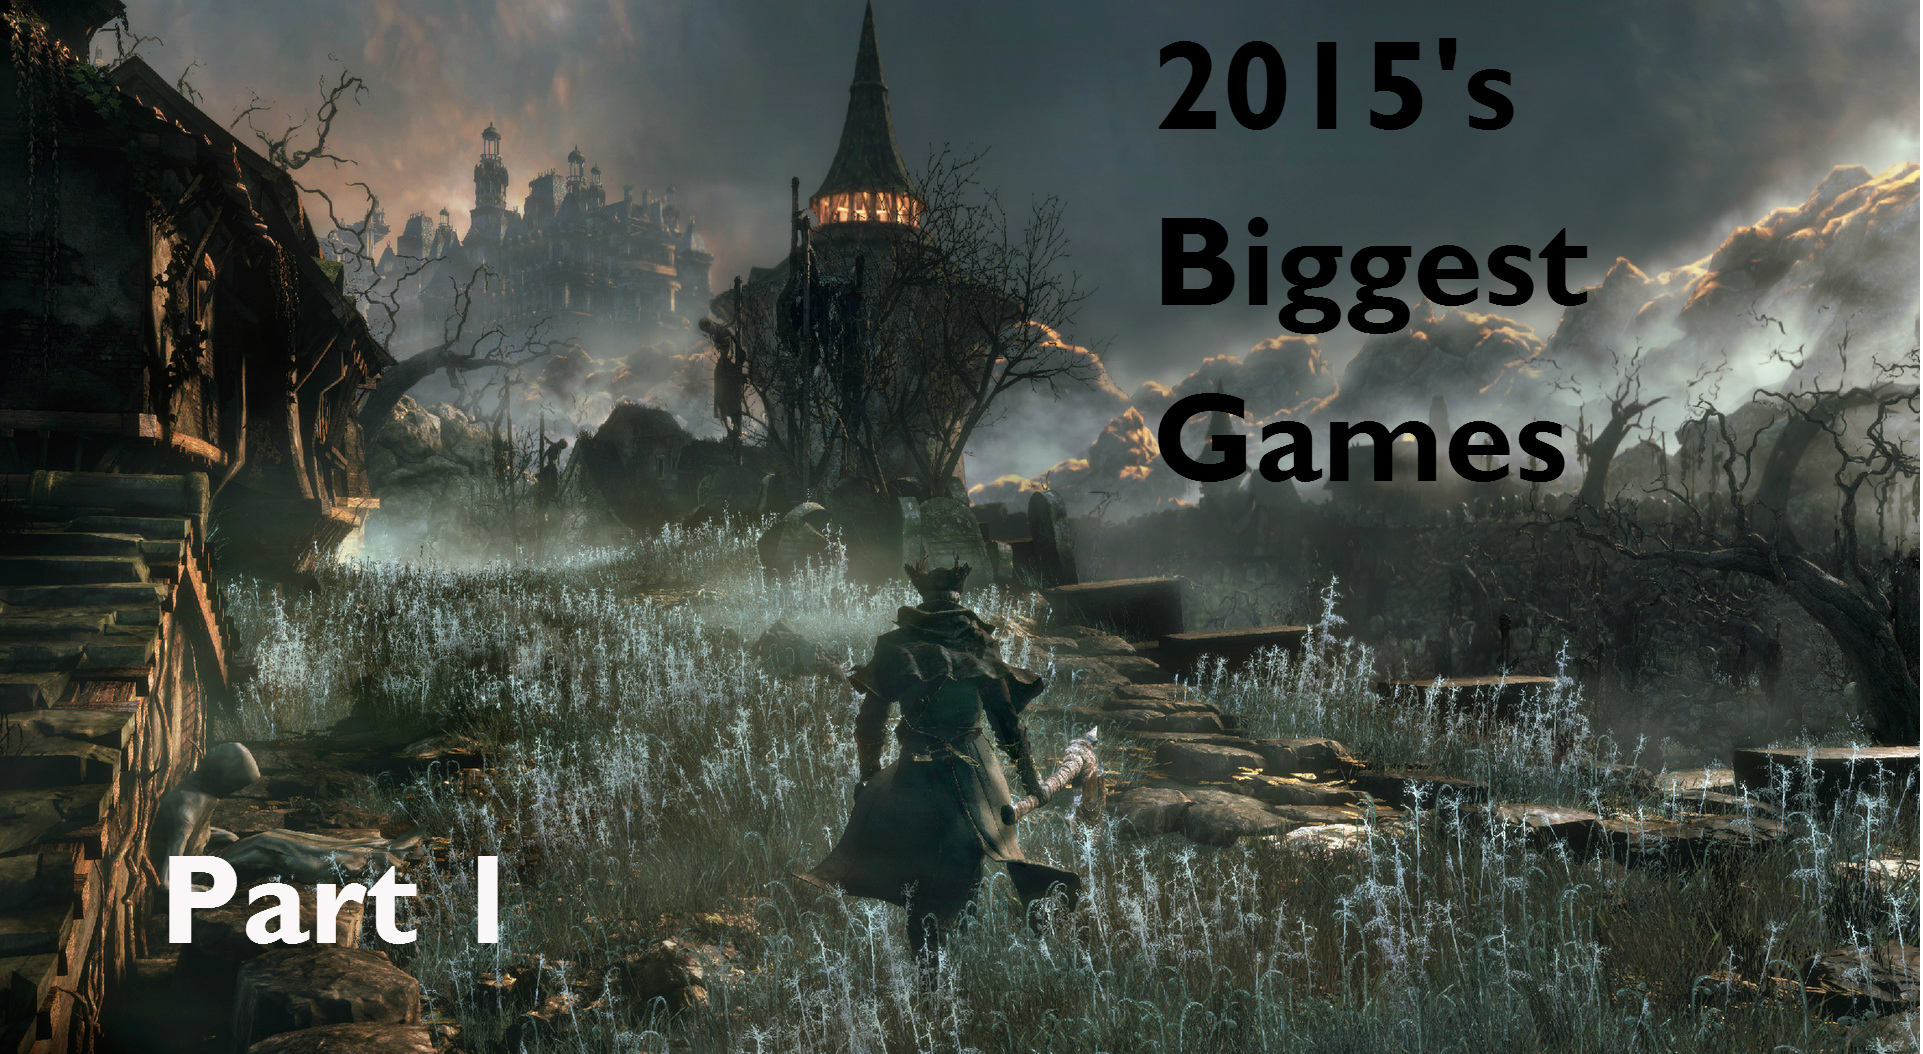 2015's Biggest Games: Part 1